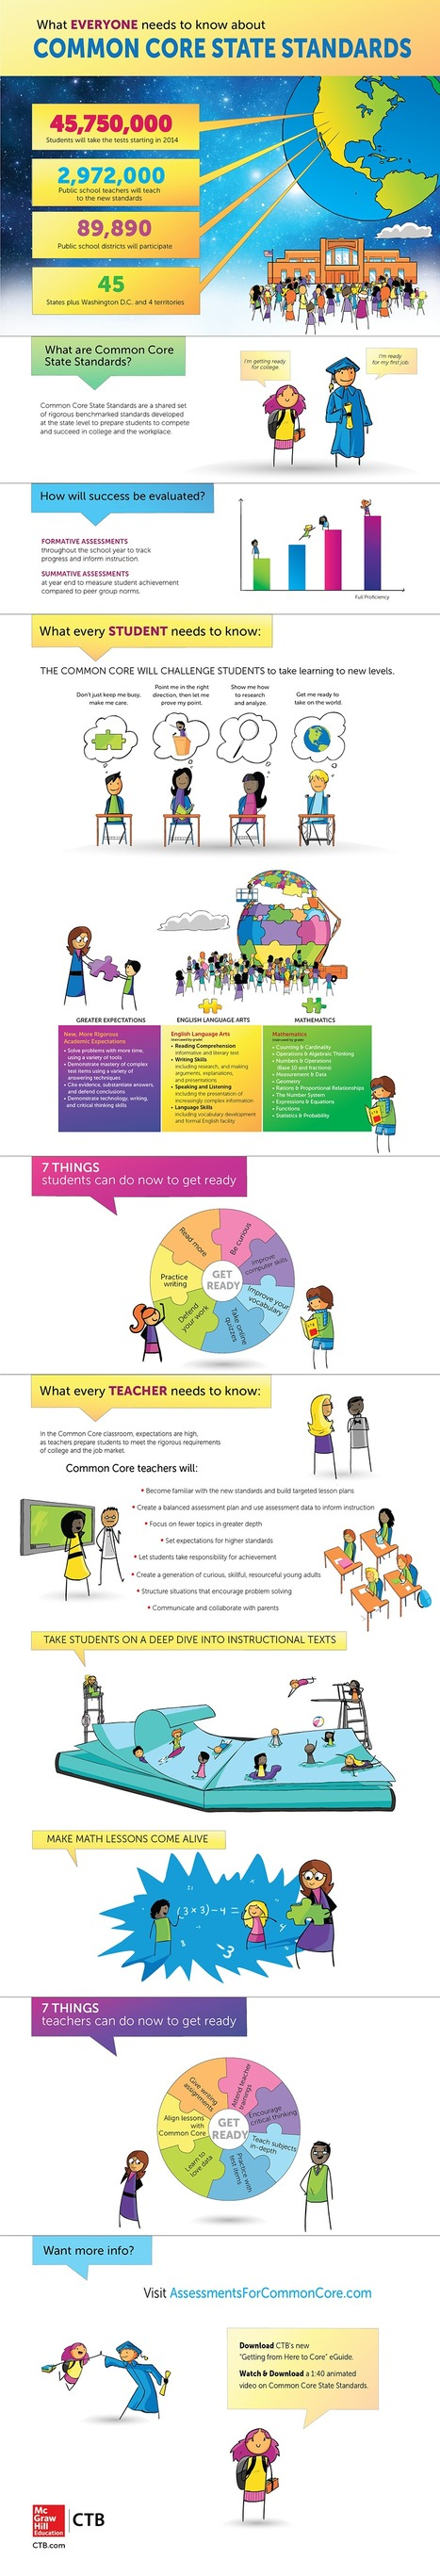 A Wonderful Visual on Common Core Standards for Teachers and Students [Infographic] | A New Society, a new education! | Scoop.it